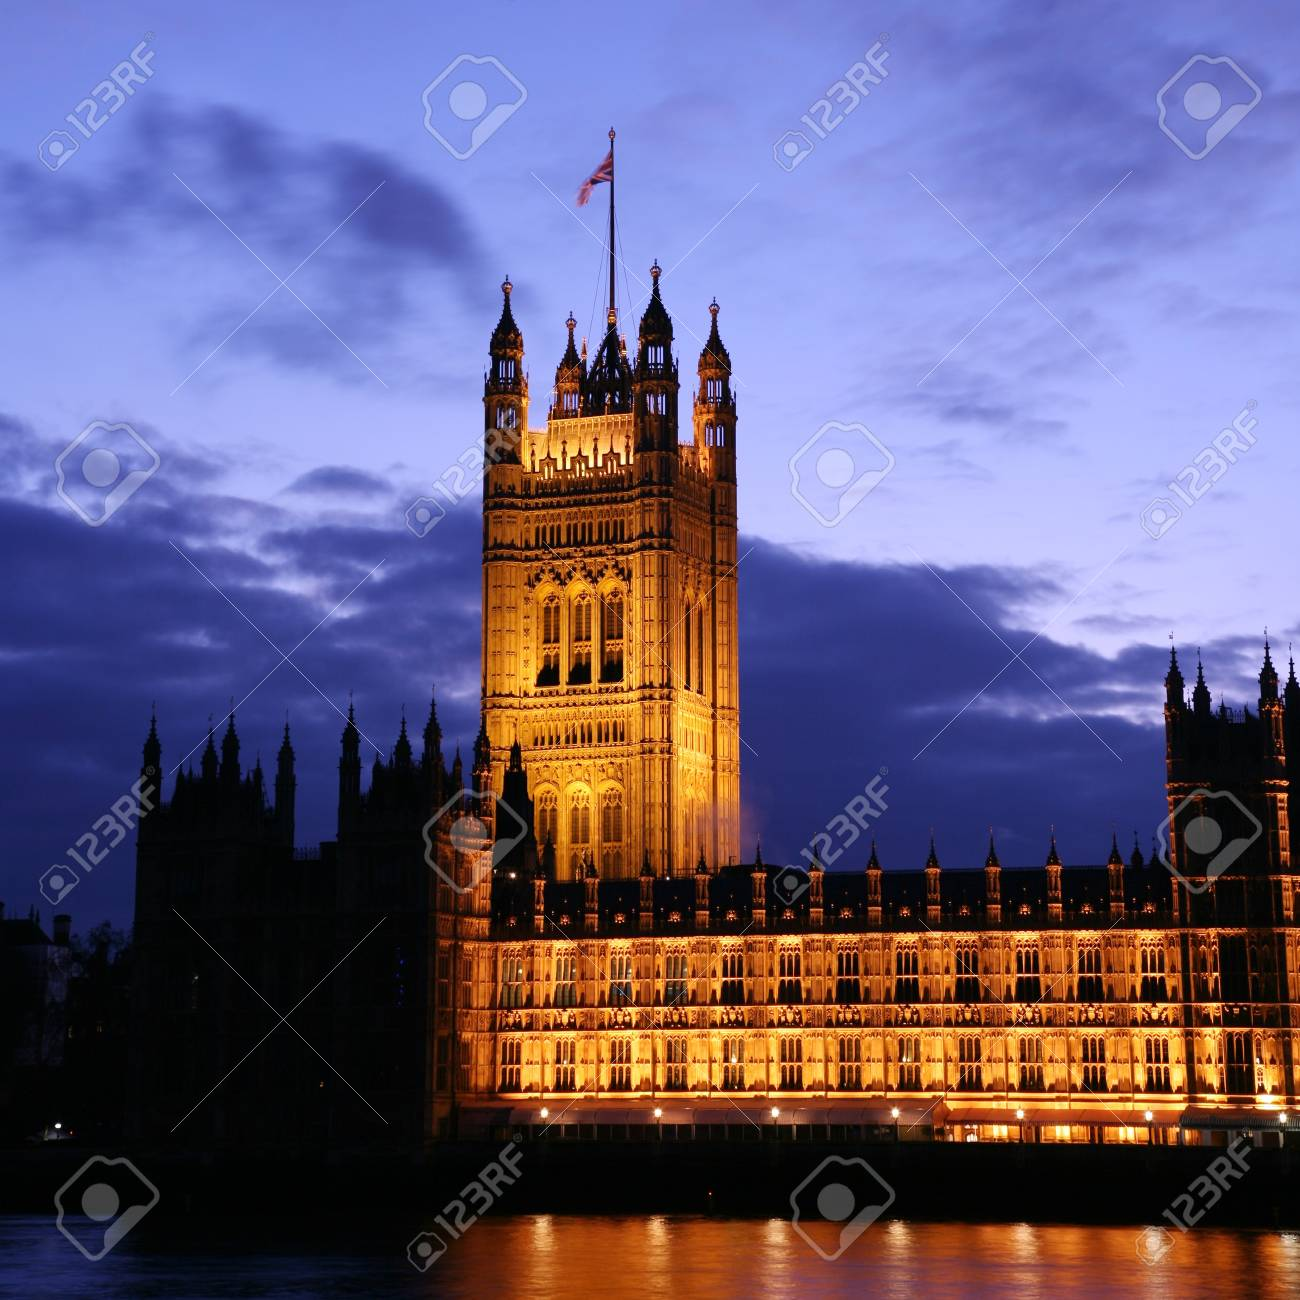 London Victoria Tower stands at the House of Lords end of the Palace of Westminster   Stock Photo - 12790105